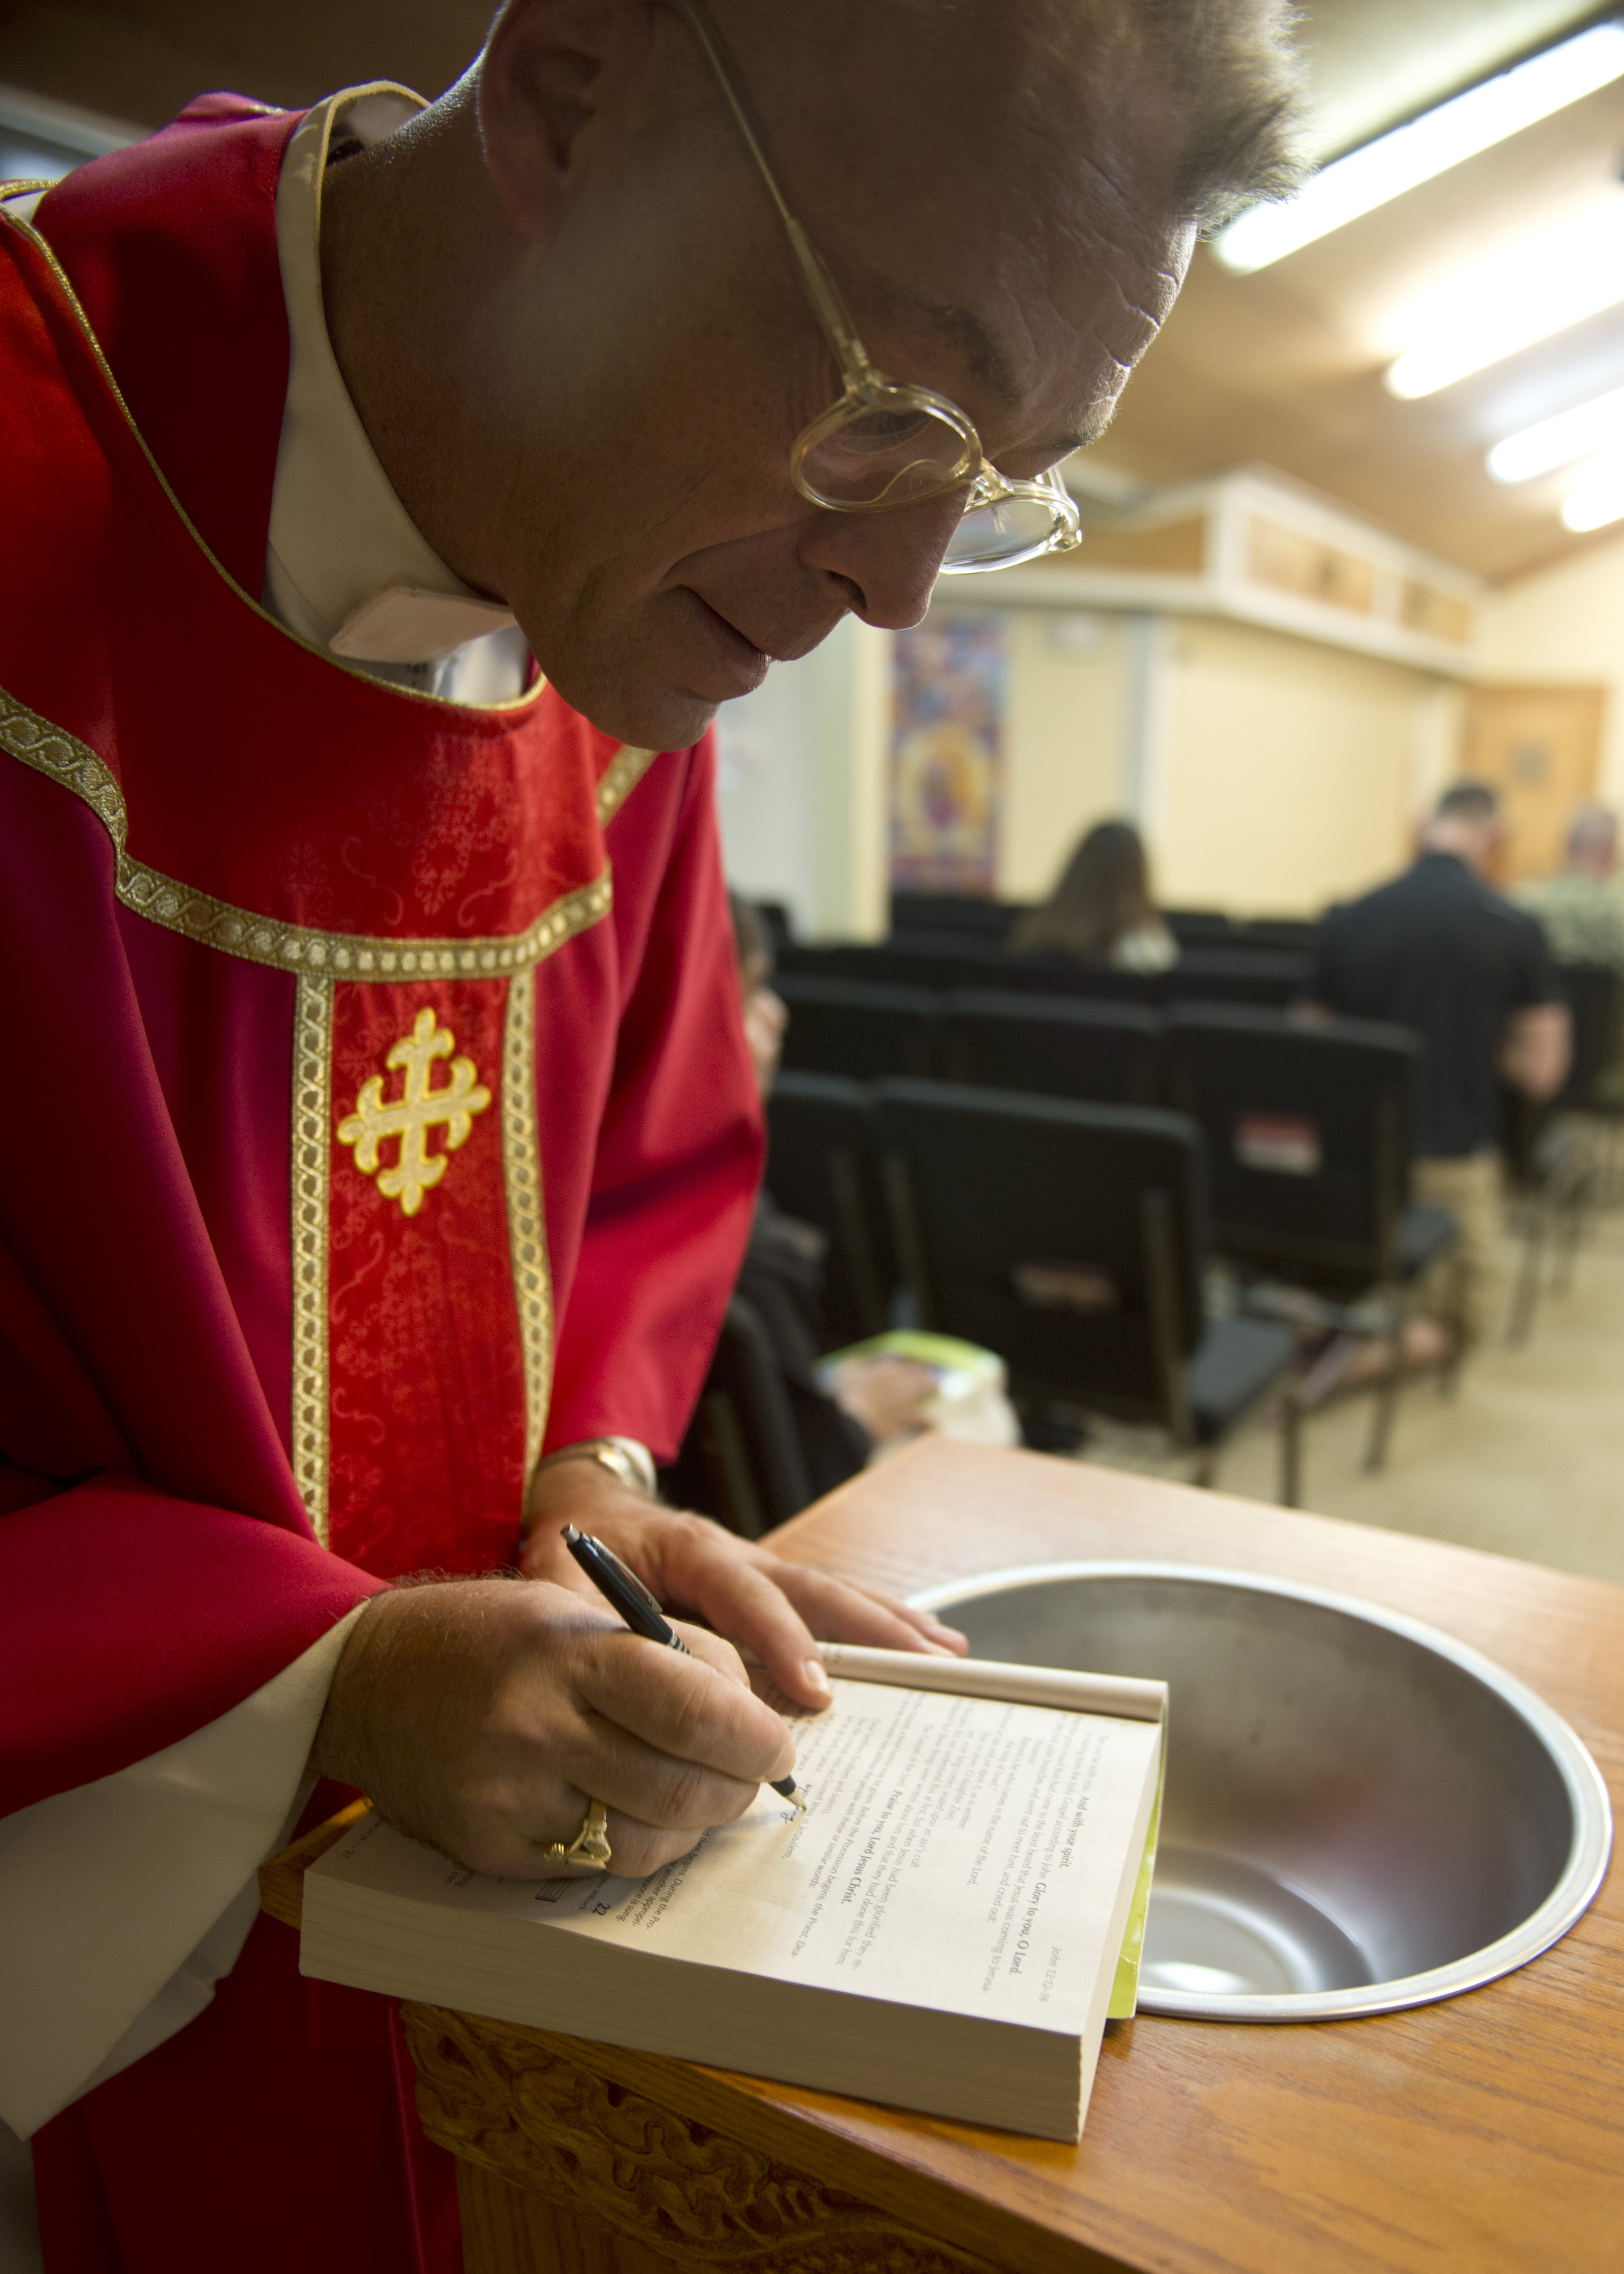 U.S. Navy Chaplain Capt. Sean O'Brien looks through his bible prior to Catholic mass at Camp Lemonnier, Djibouti, Mar. 28, 2015. The Chaplain's priorities are to enhance Airmen's readiness by preparing them with spiritual resiliency, engaging them through ministry of presence and spiritual care and ensuring worship and religious education opportunities are available to all. (U.S. Air Force photo by Staff Sgt. Kevin Iinuma)